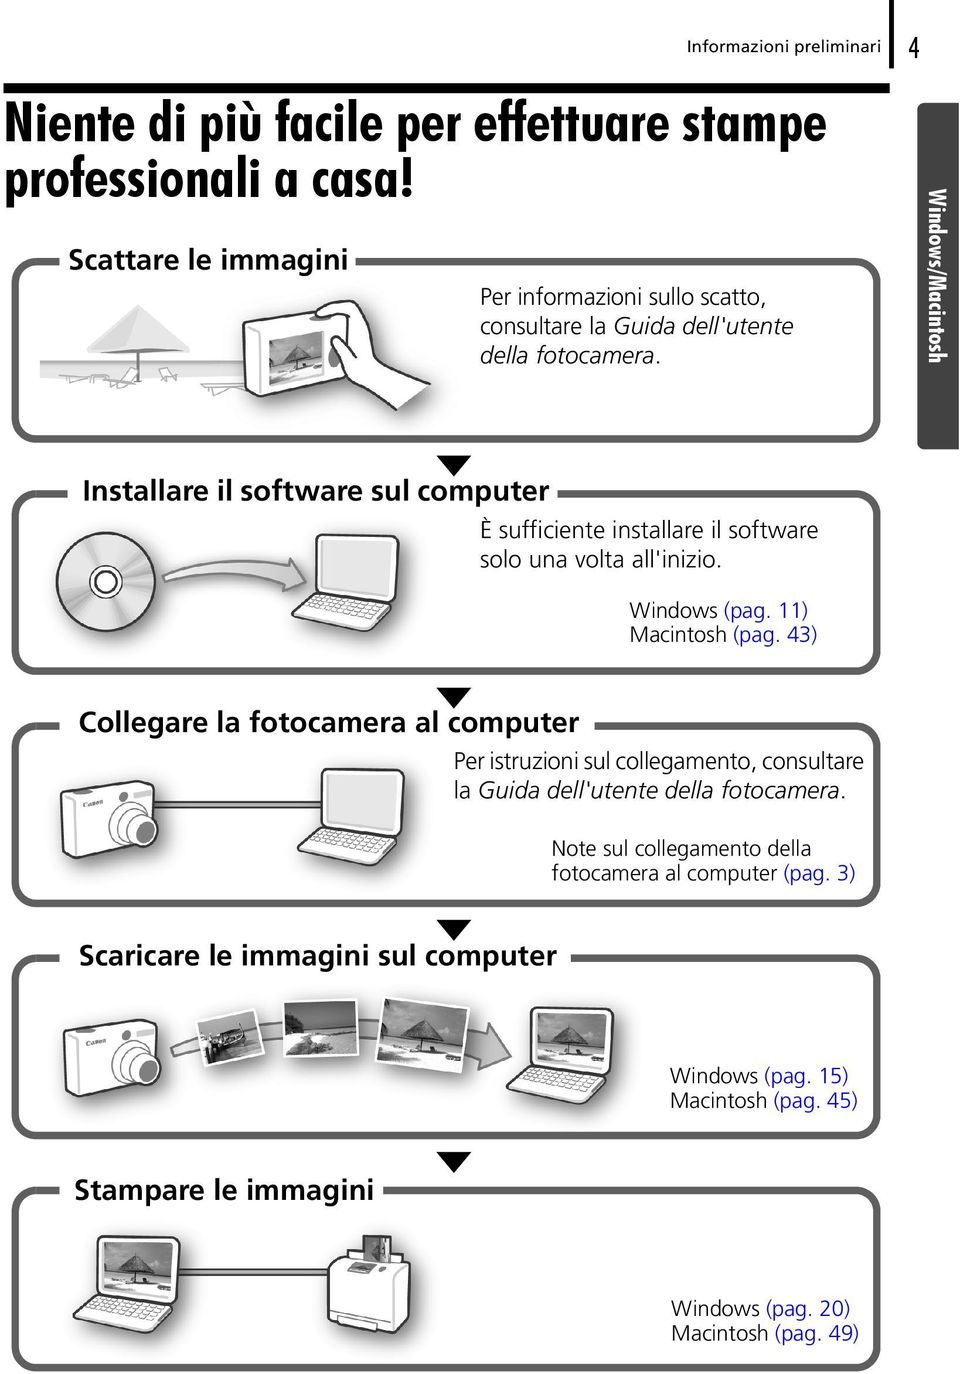 Windows/Macintosh Installare il software sul computer È sufficiente installare il software solo una volta all'inizio. Windows (pag. 11) Macintosh (pag.